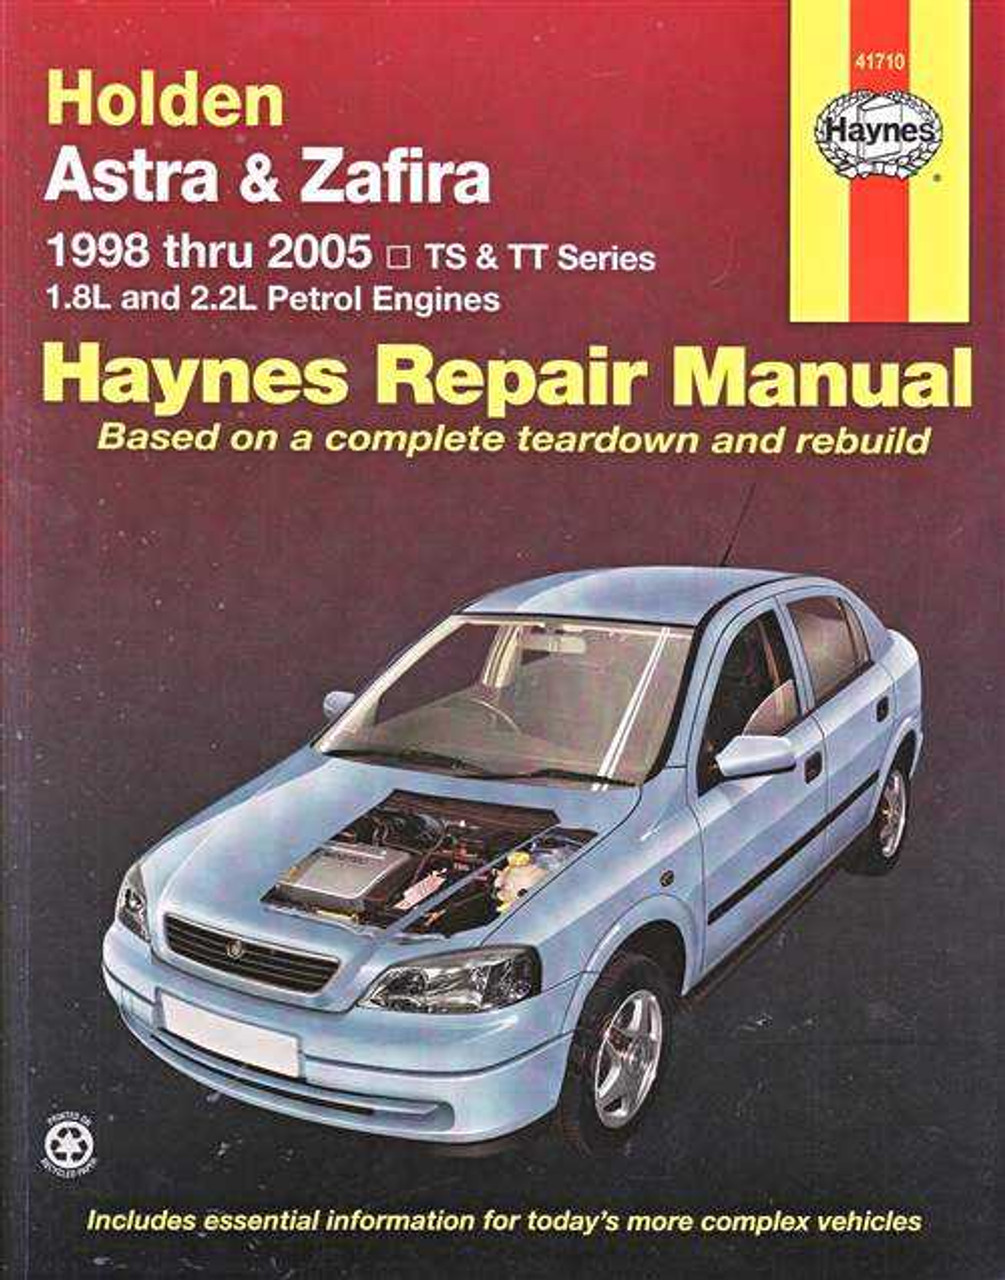 holden astra amp zafira ts tt series 1998 2005 workshop manual rh automotobookshop com au holden owners manual holden barina owners manual download